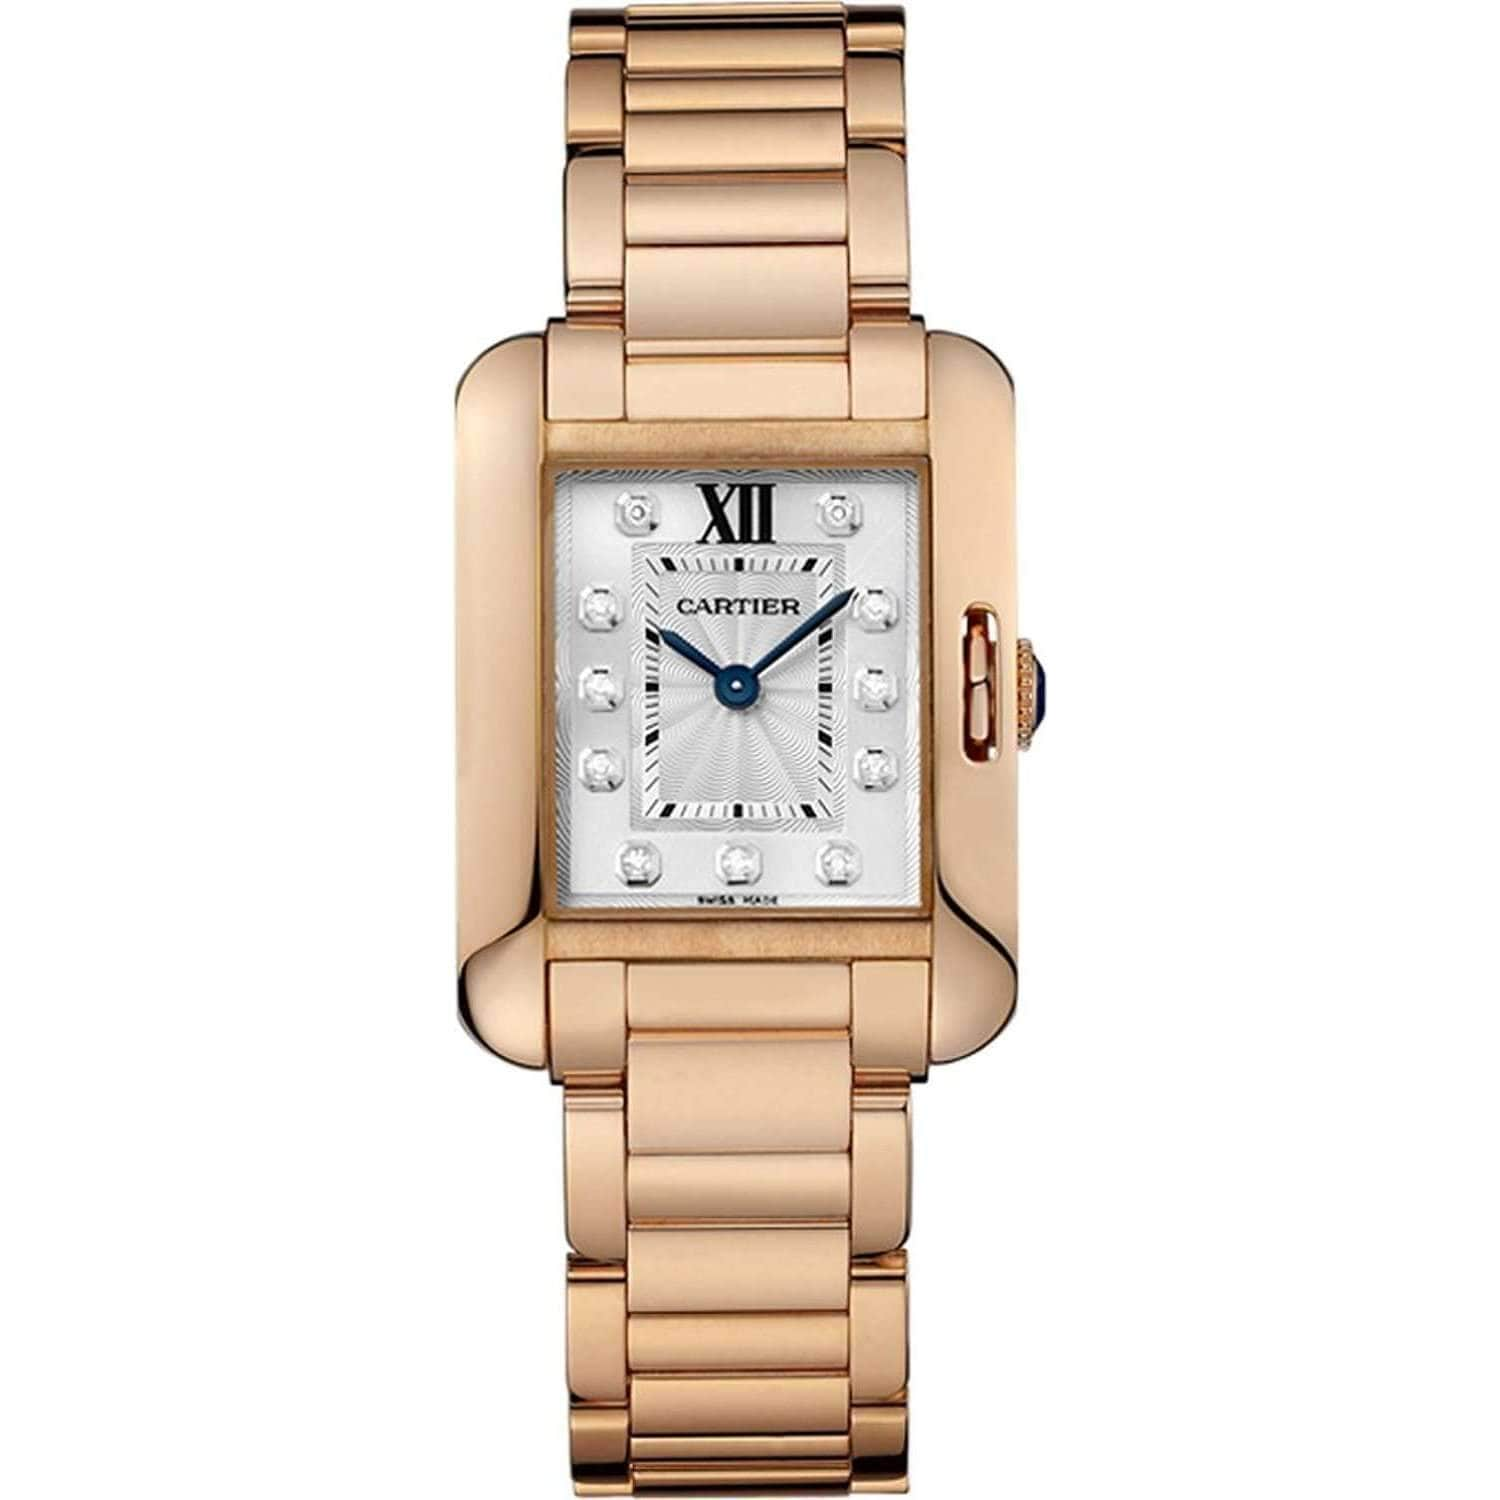 CARTIER TANK ANGLAISE GOLD 18K WOMEN WATCH  WJTA0004 - ROOK JAPAN